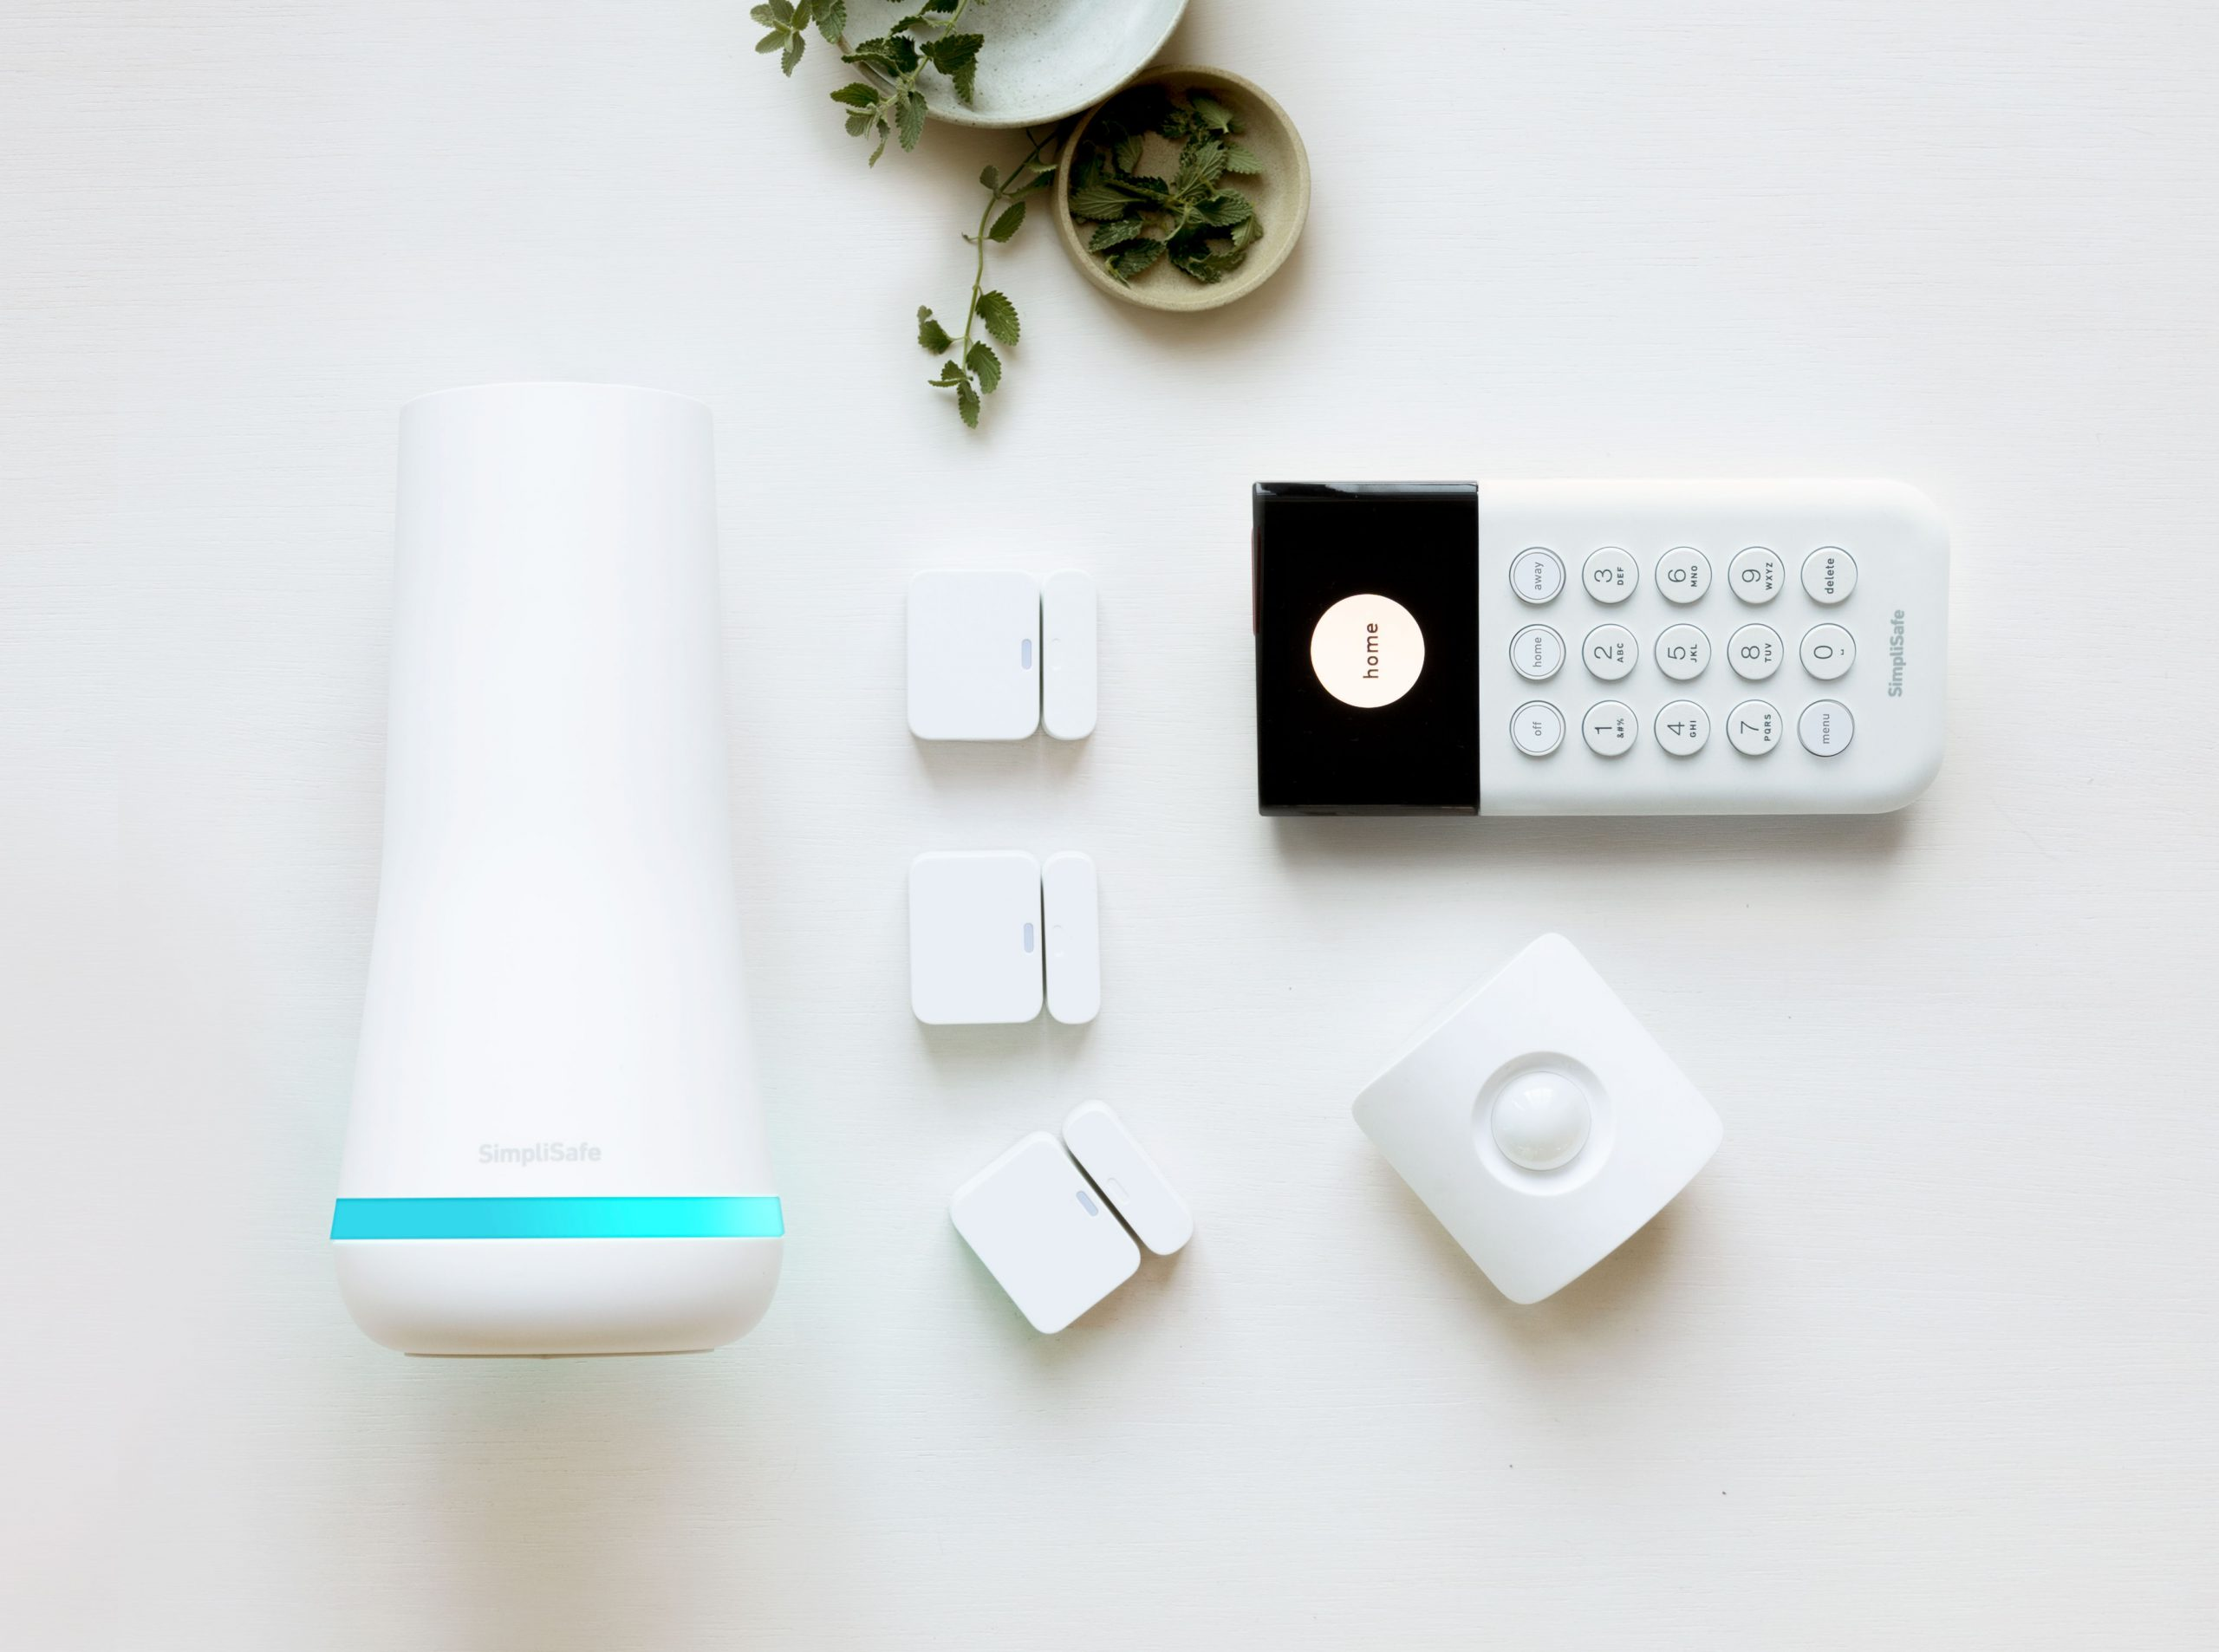 SimpliSafe Wireless Alarm System